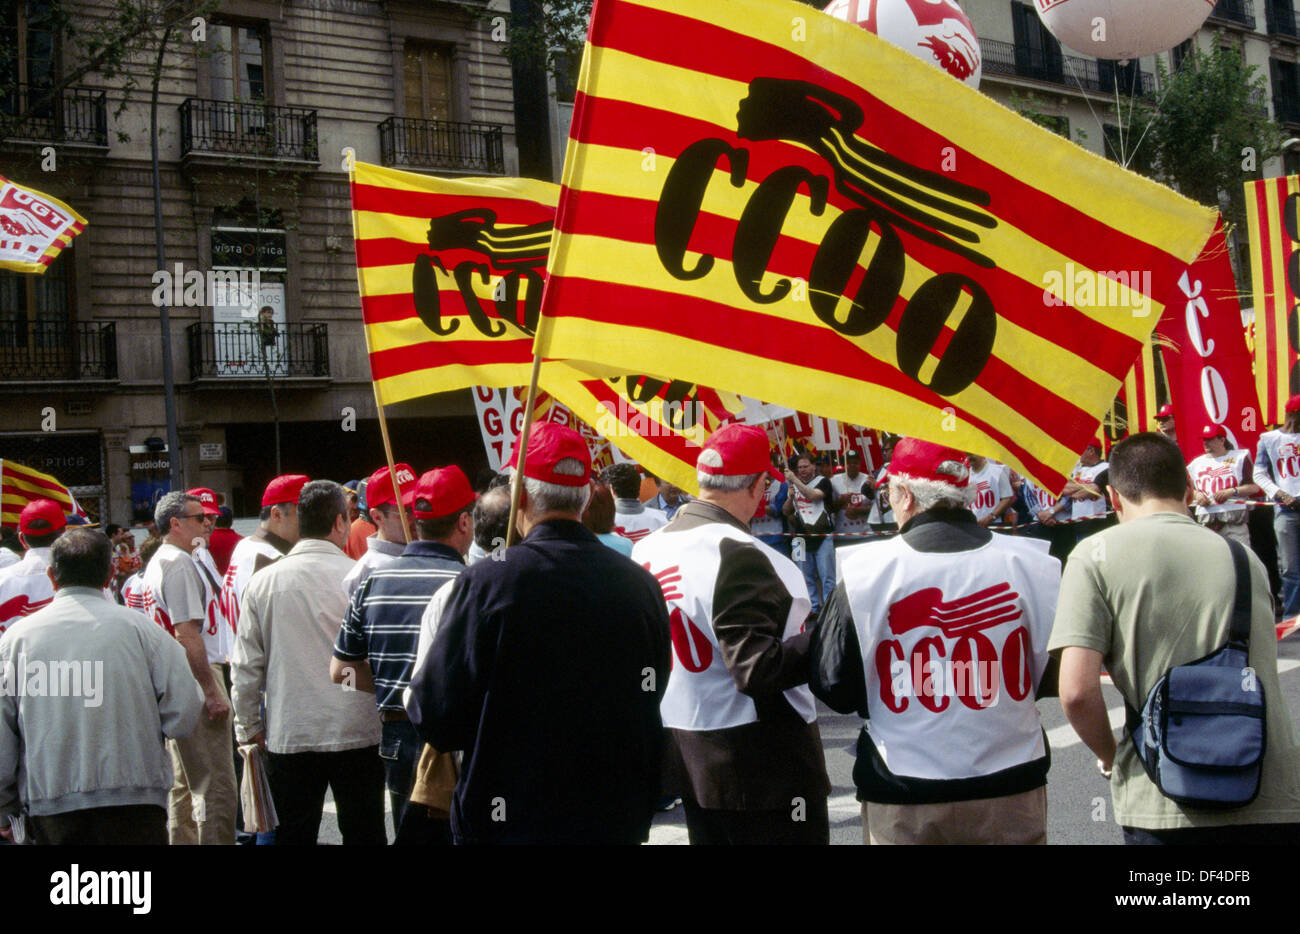 Spanish labor union CC.OO. (´Comisiones Obreras´) demonstration during May Day, 2005. Barcelona, Spain Stock Photo